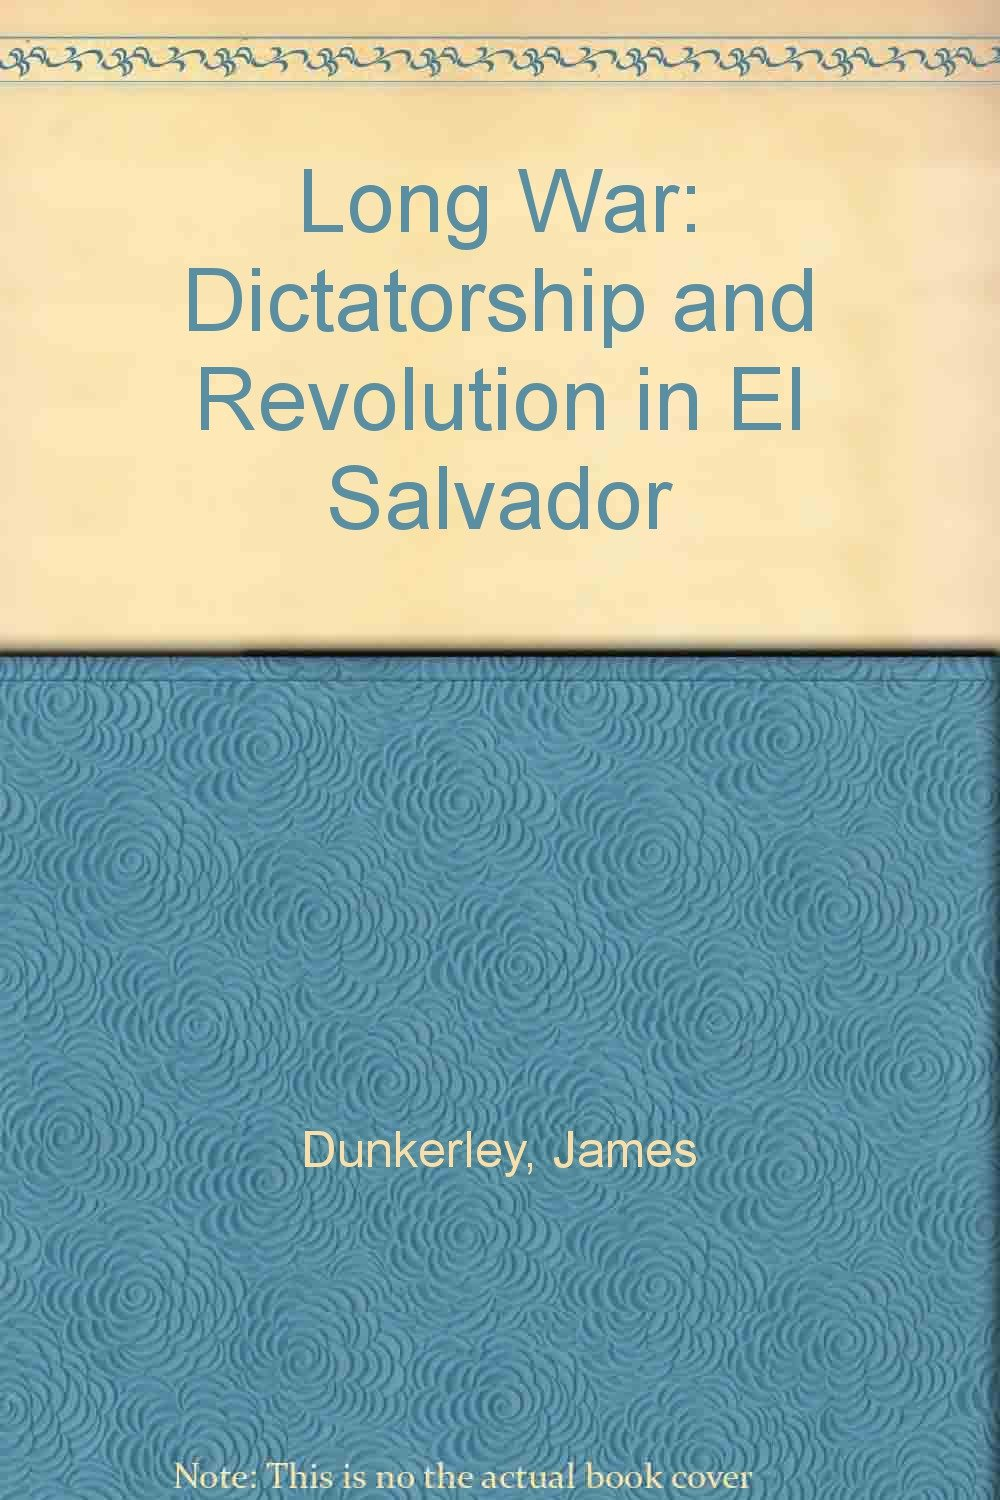 Image OfLong War: Dictatorship And Revolution In El Salvador